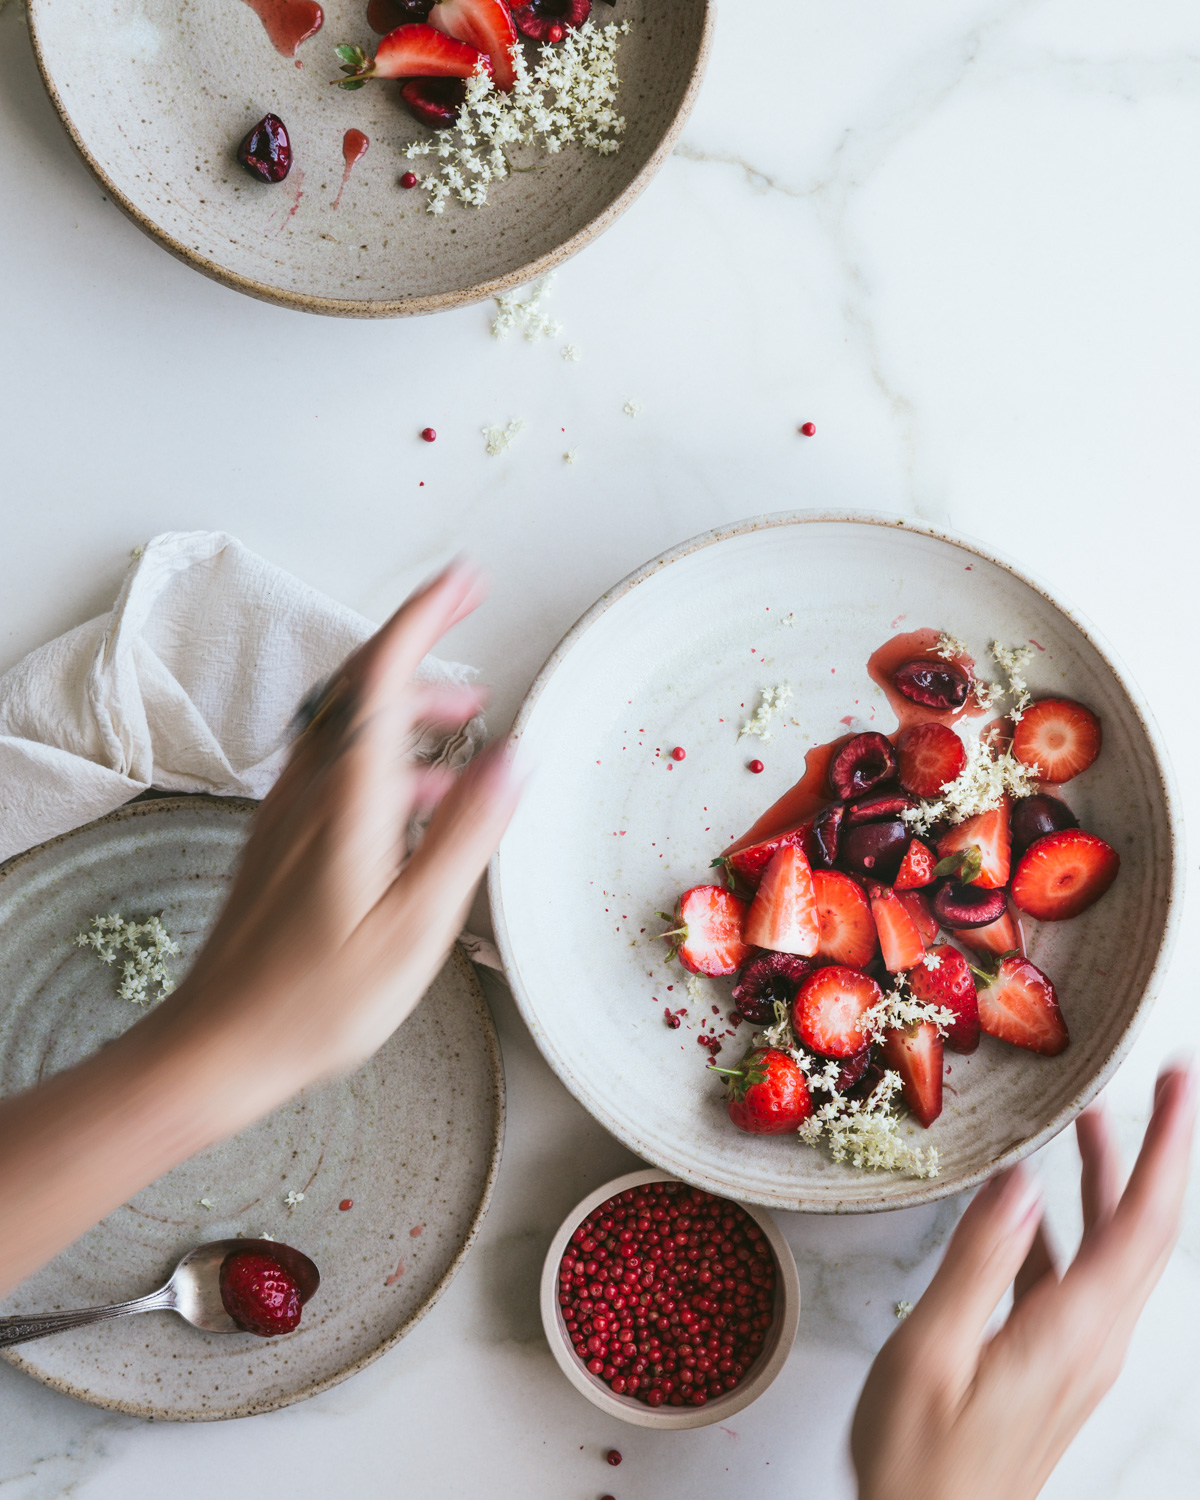 London food styling and cake styling course, learn the art of food photography